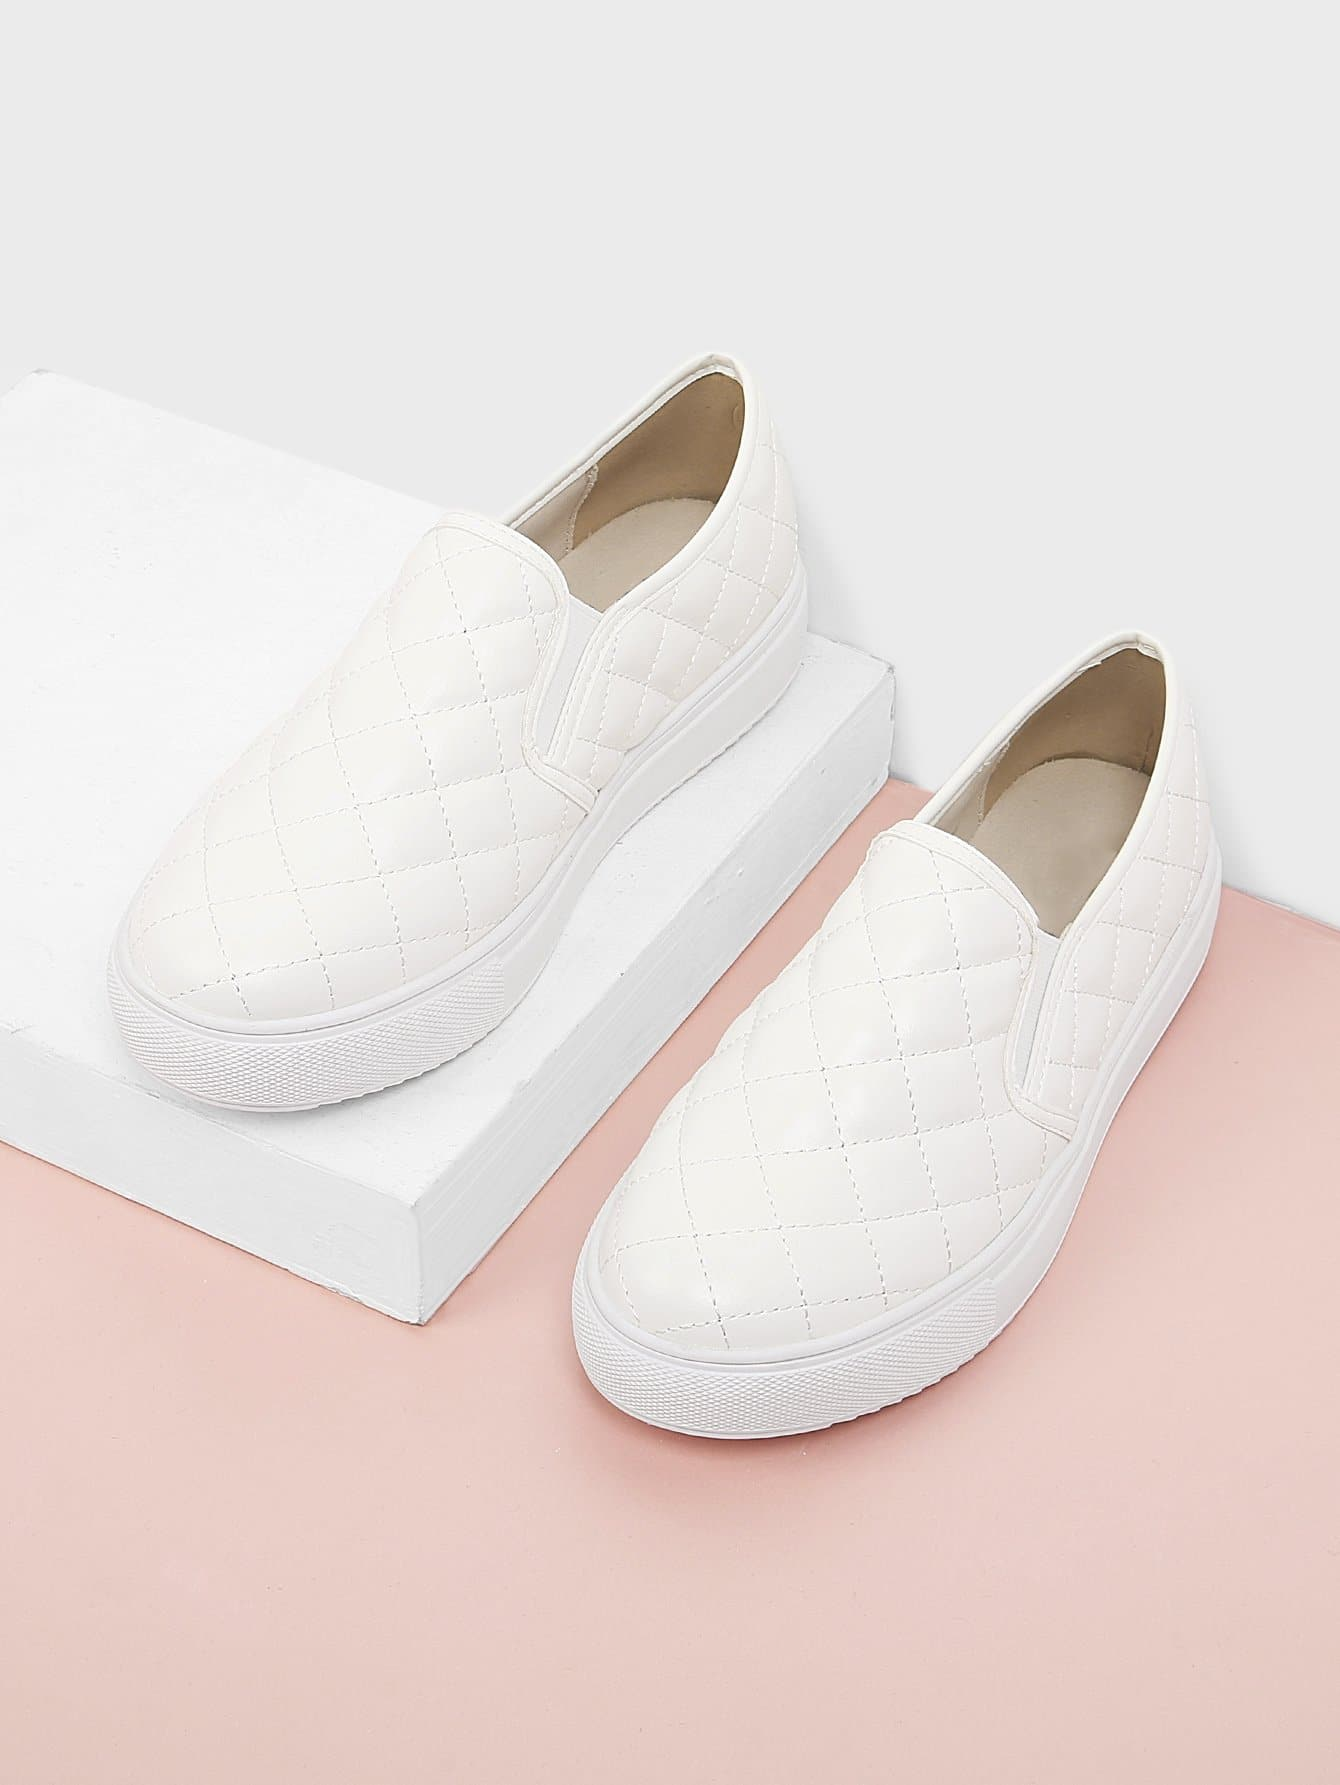 Quilted Slip On Sneakers quilted purses